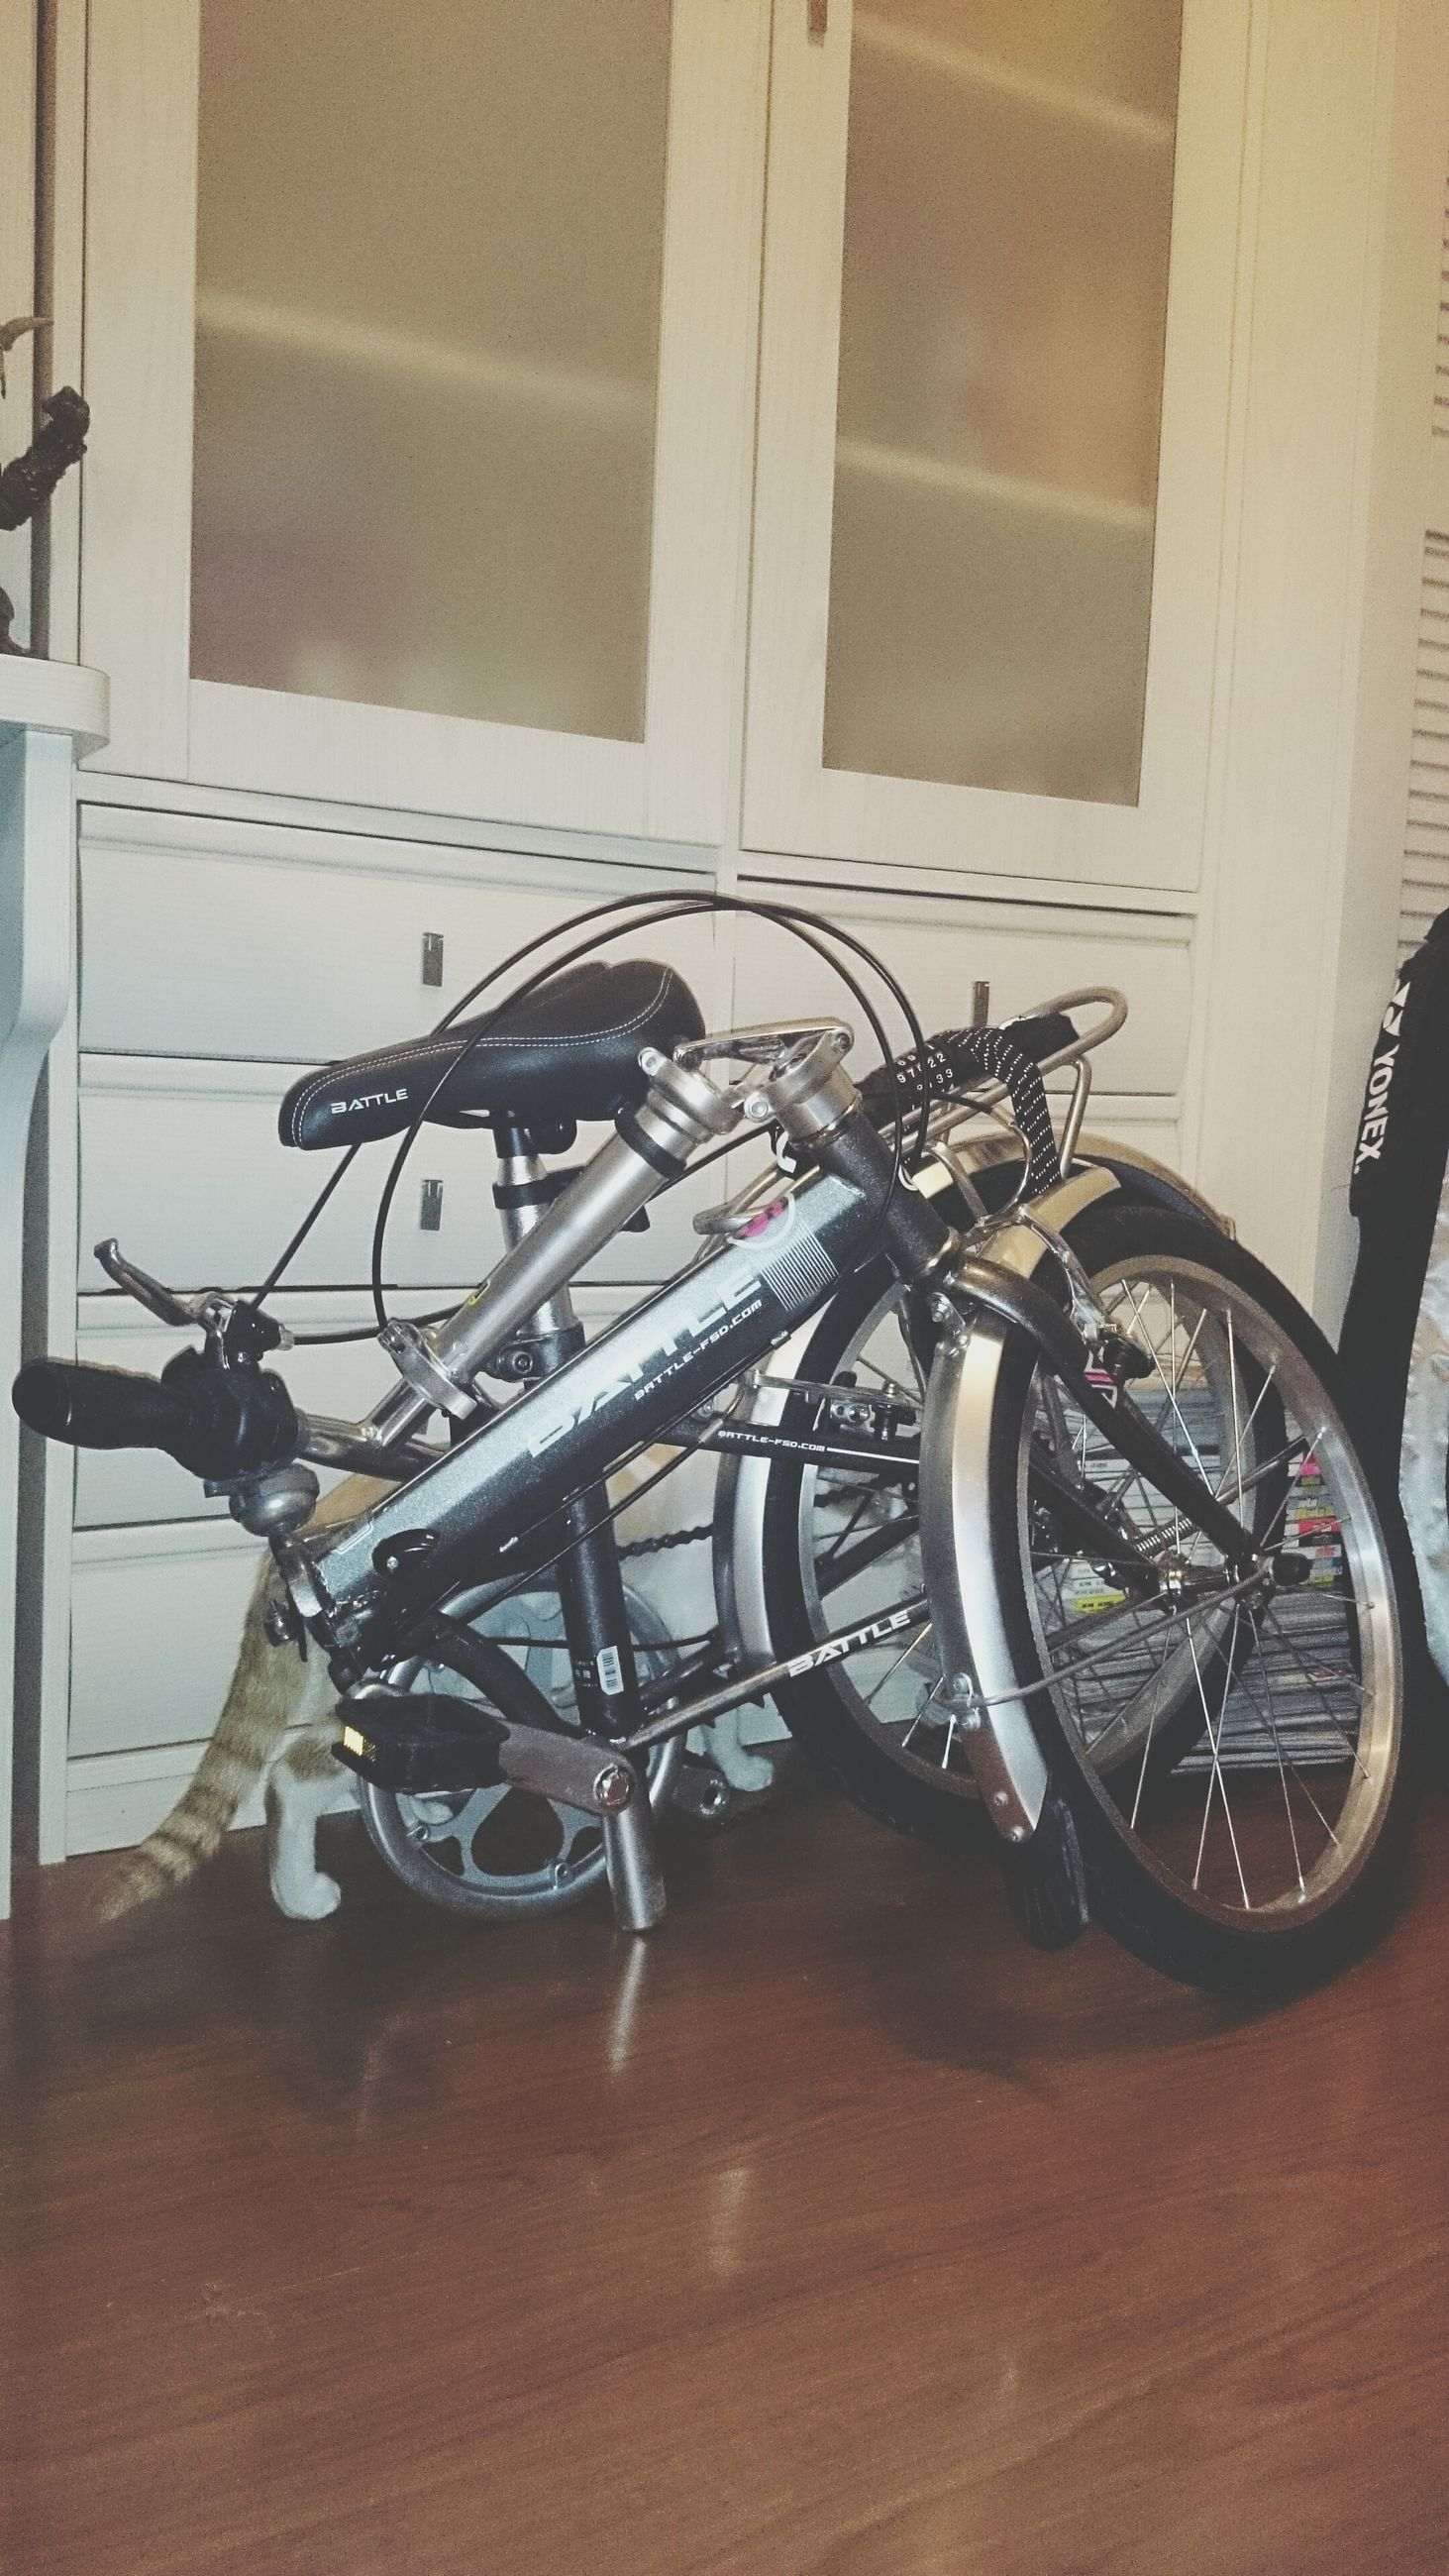 bicycle, land vehicle, architecture, transportation, mode of transport, built structure, stationary, building exterior, wall - building feature, parking, parked, wheel, day, wall, no people, window, outdoors, street, building, house